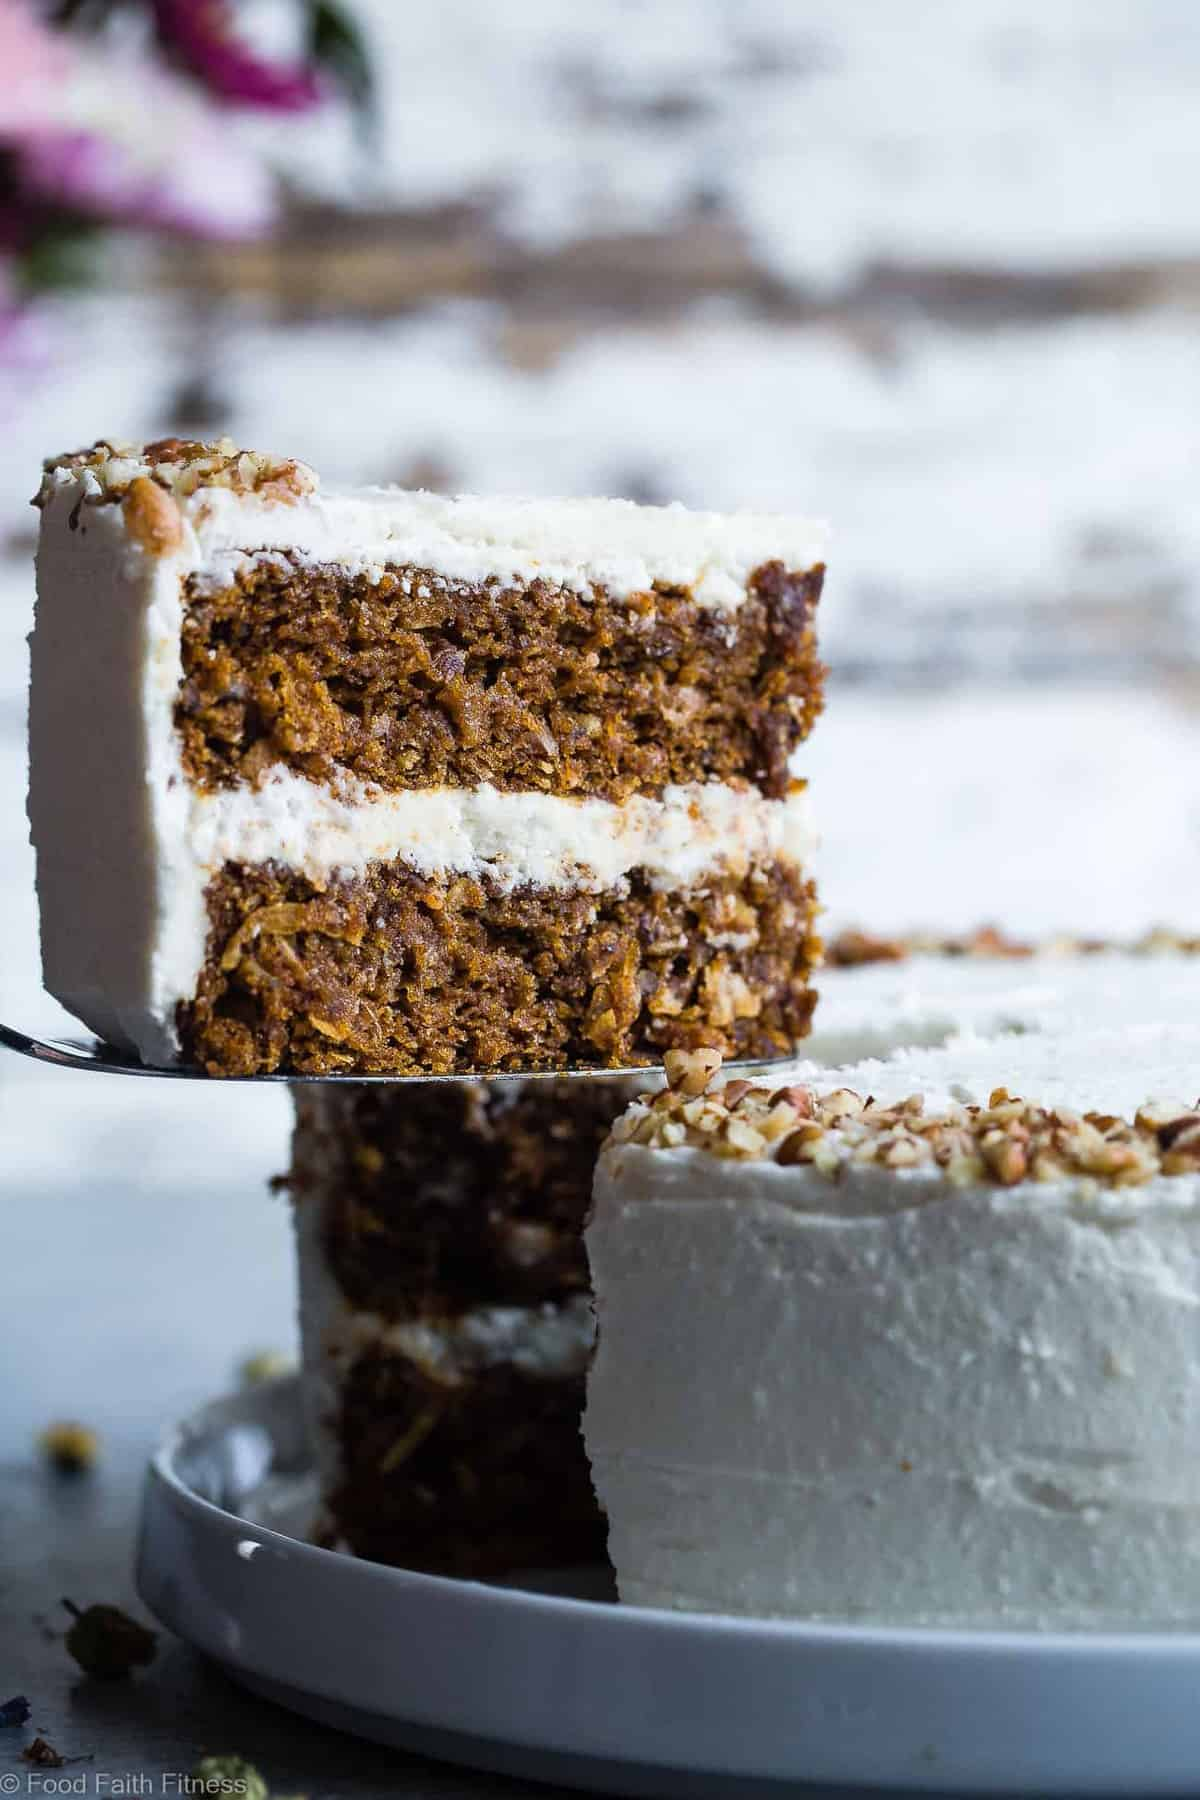 The BEST Gluten Free Vegan Carrot Cake -This one bowl, healthy carrot cake is SO moist and tender, you'll never know it's plant based, made without eggs and is gluten/grain/dairy/refined sugar free! Perfect for Easter! | #Foodfaitfitness | #Vegan #Easter #Glutenfree #DairyFree #Carrotcake